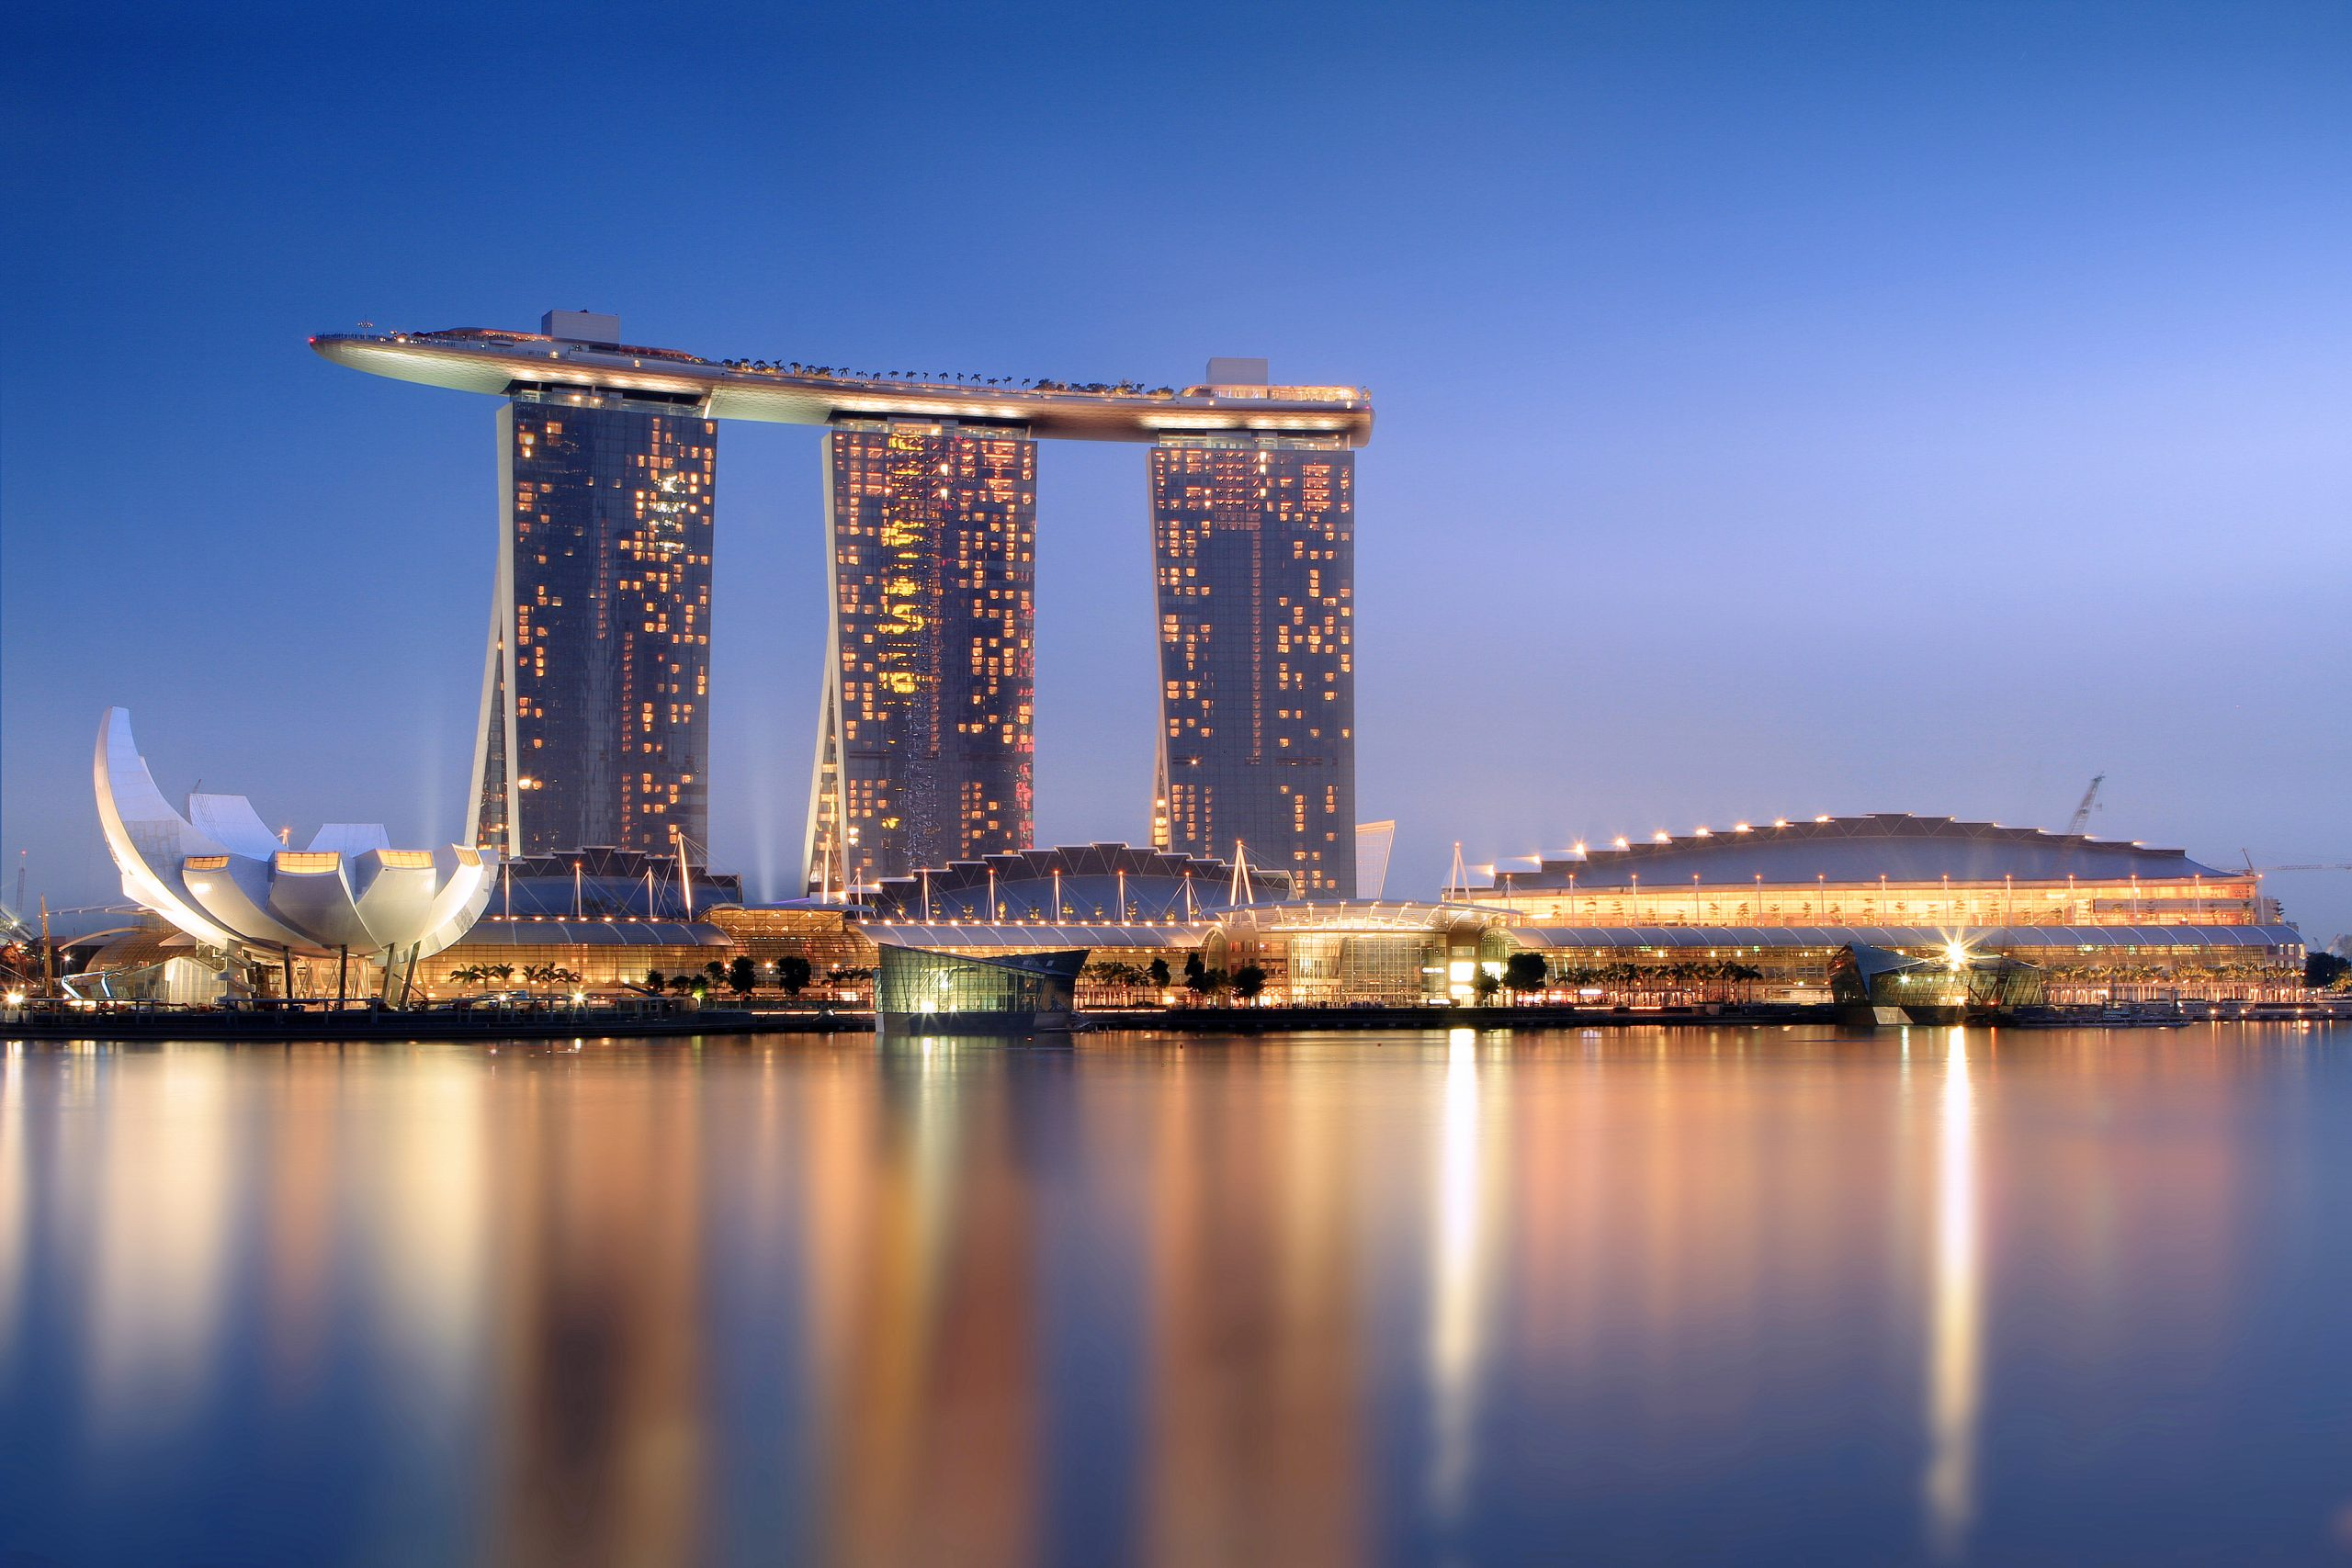 Top Luxury Hotel in Singapore-Marina Bay Sands